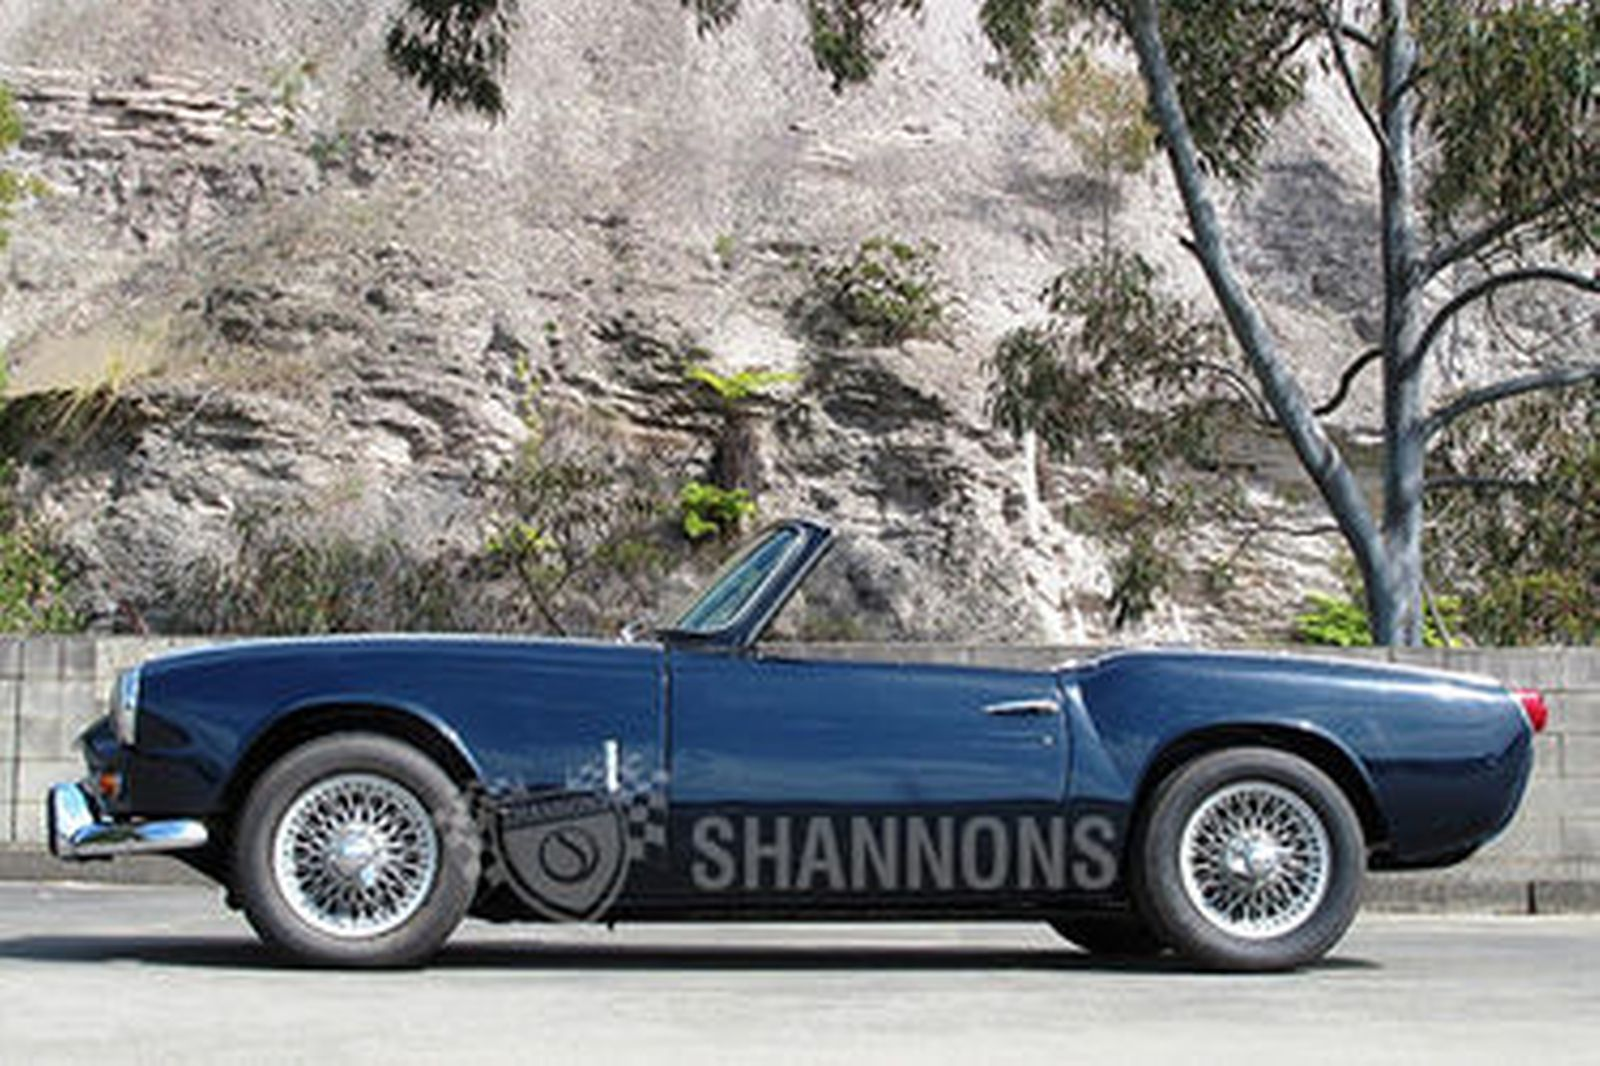 Sold: Triumph Spitfire 1200 Roadster Auctions - Lot 2 - Shannons